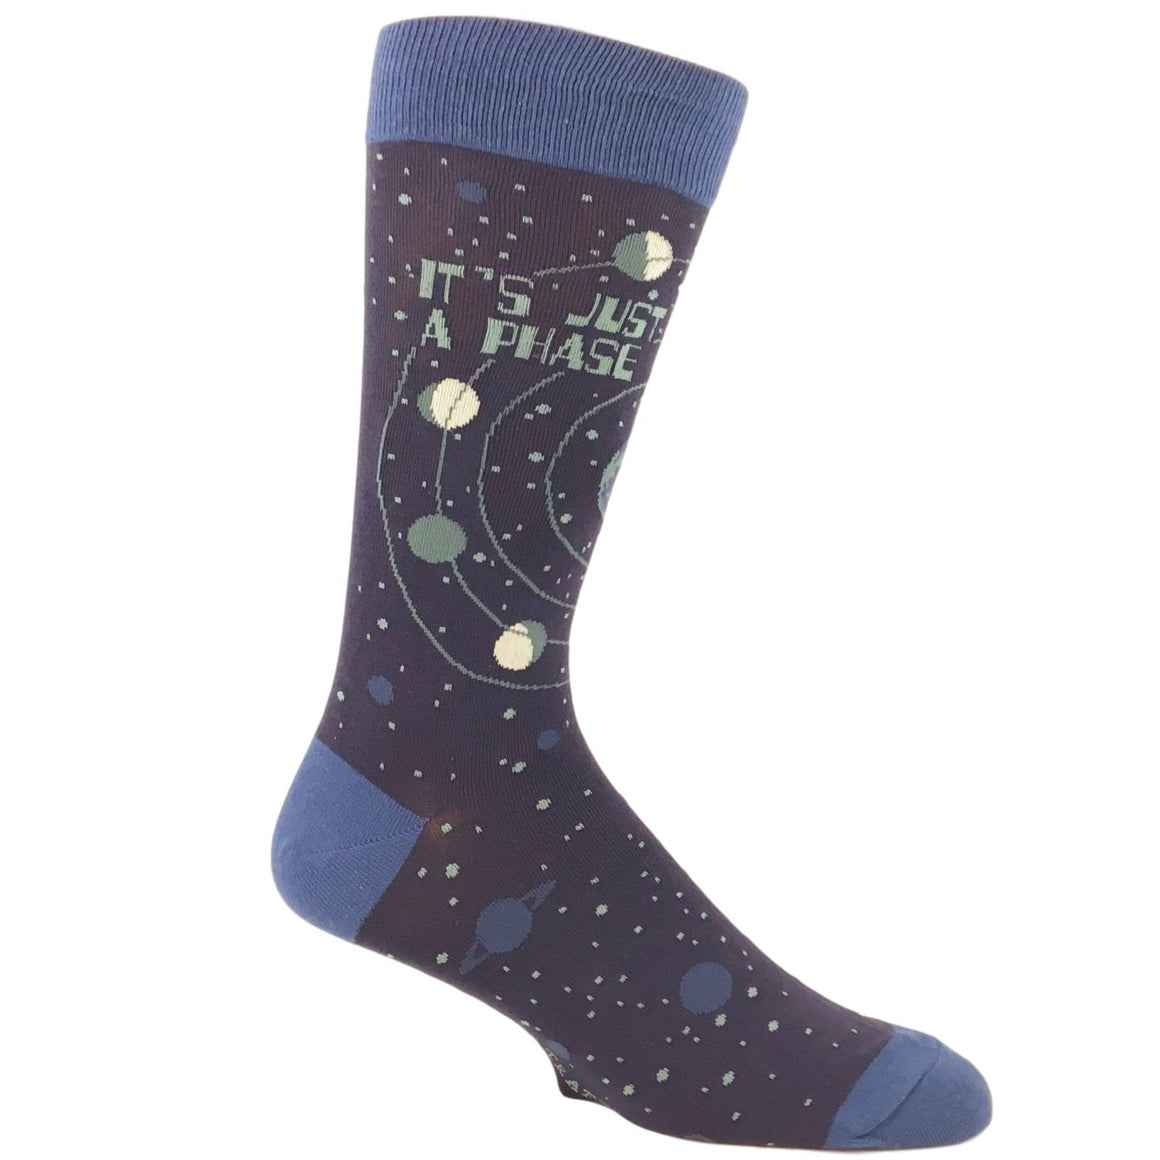 Socks - Just A Phase Space Socks